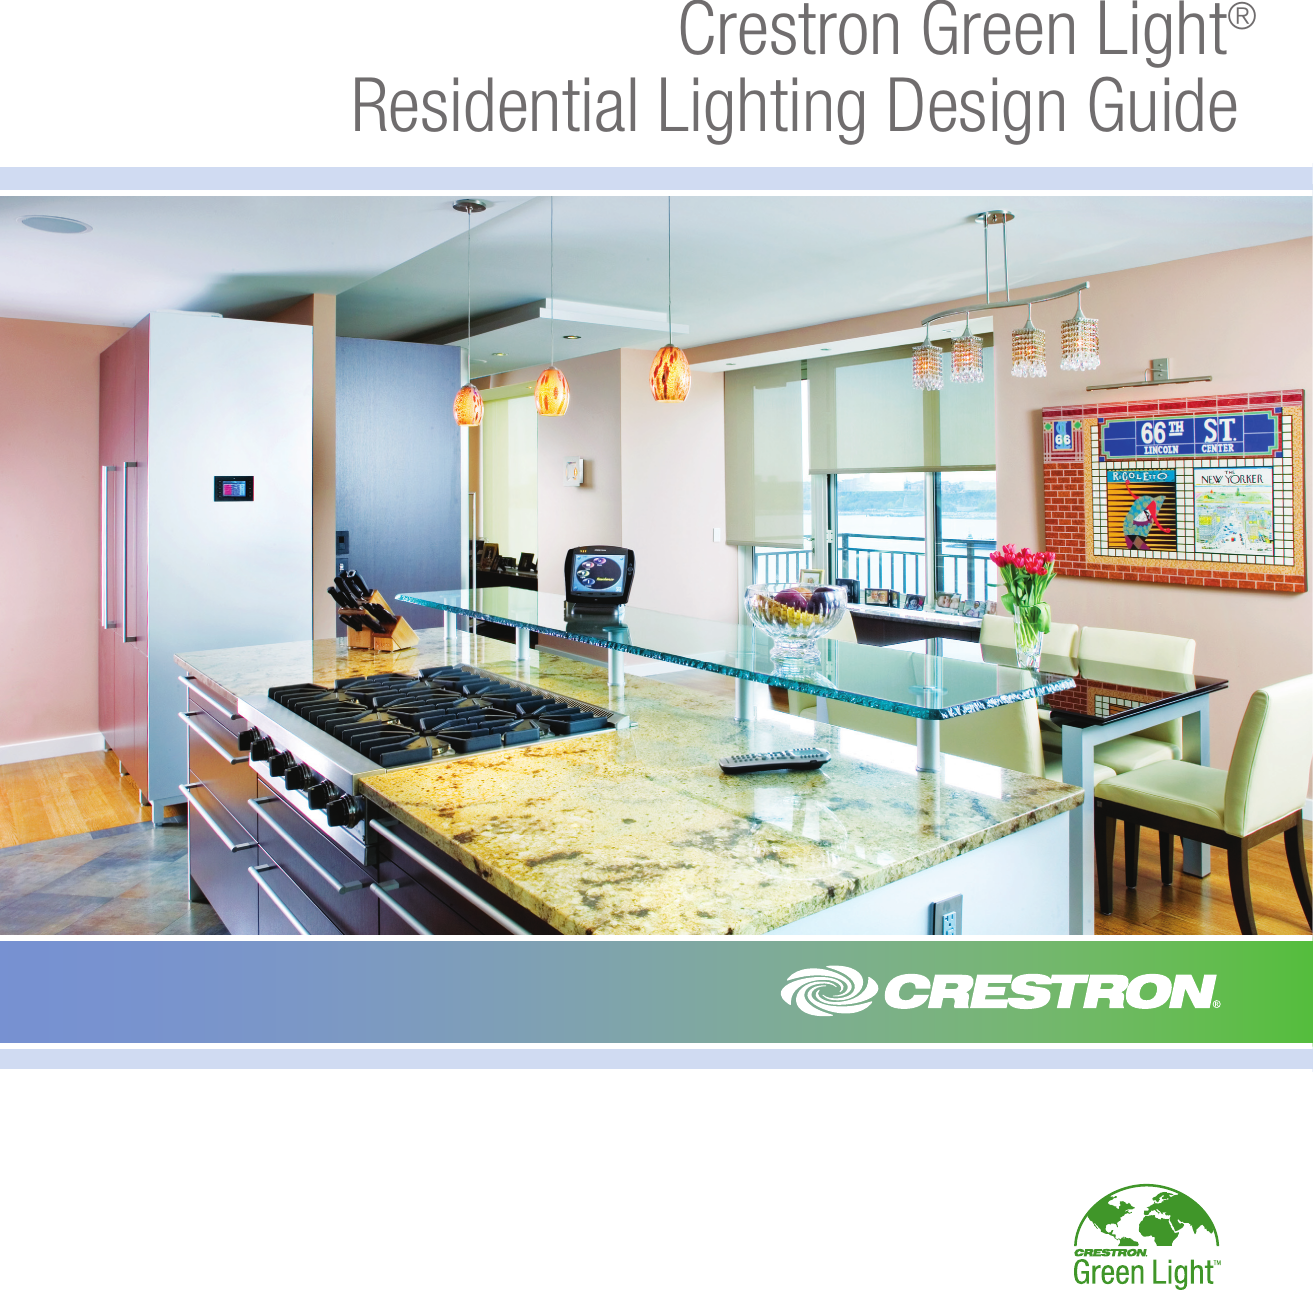 Crestron Electronic Residential Lighting Users Manual Design Guide Fullduplex Intercom Pcb For Your Office And House